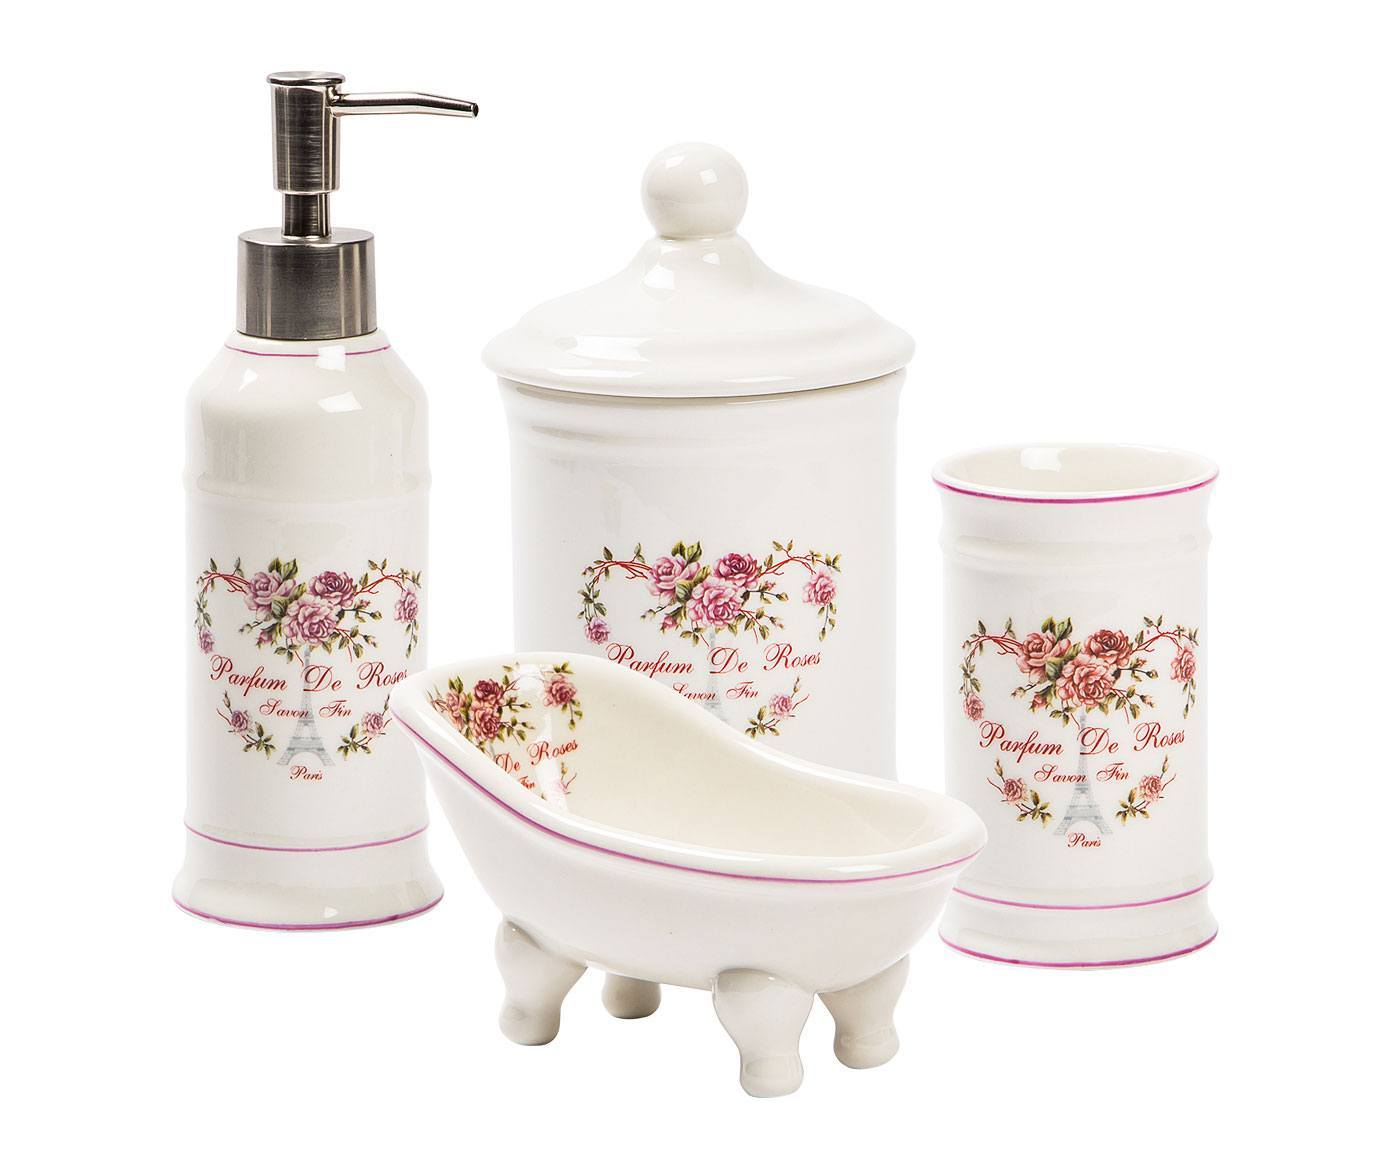 Antica soffitta set accessori bagno cuori rose ceramica for Accessori bagno in ceramica